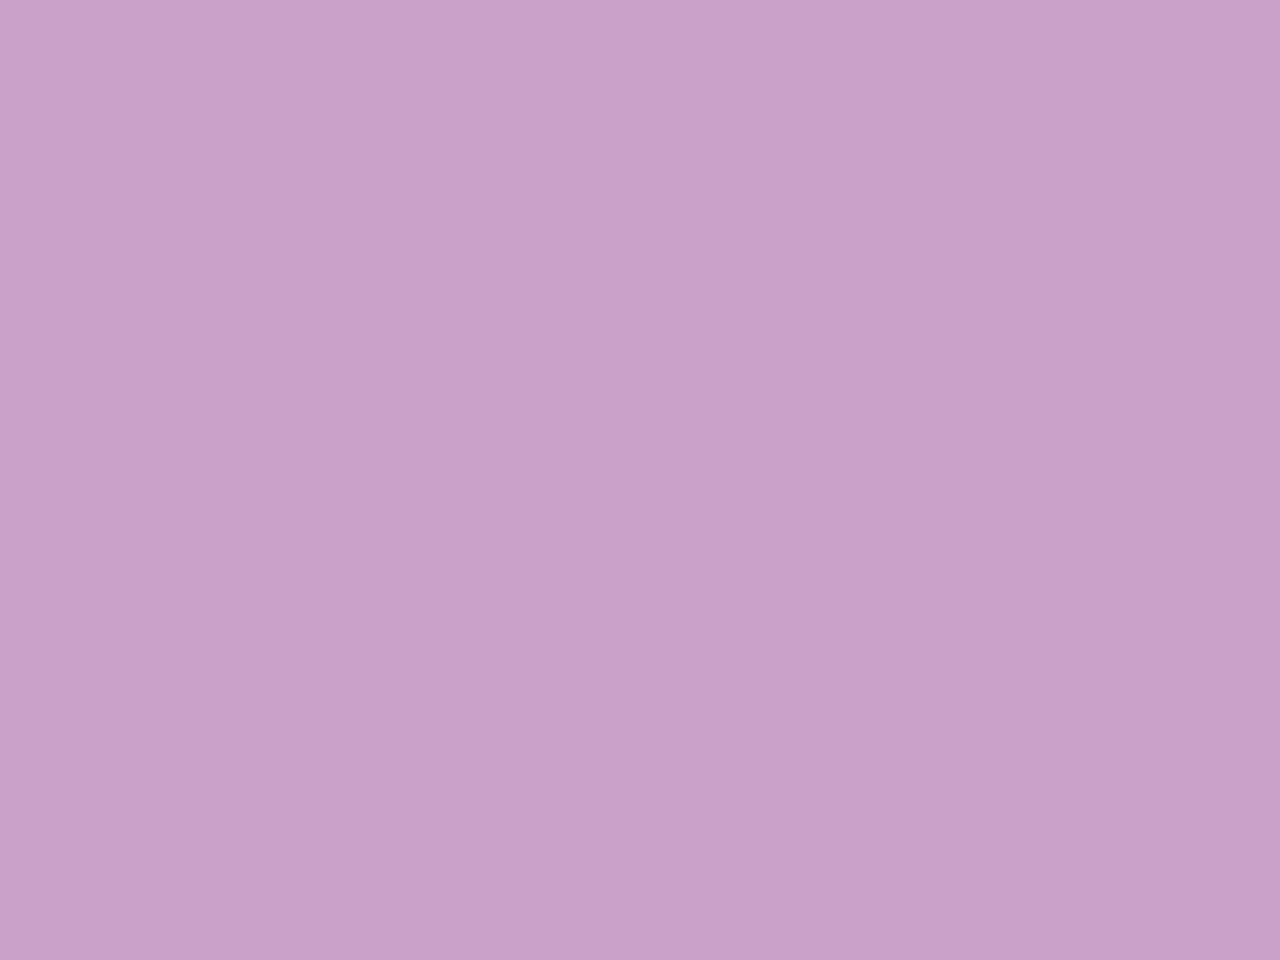 1280x960 Lilac Solid Color Background